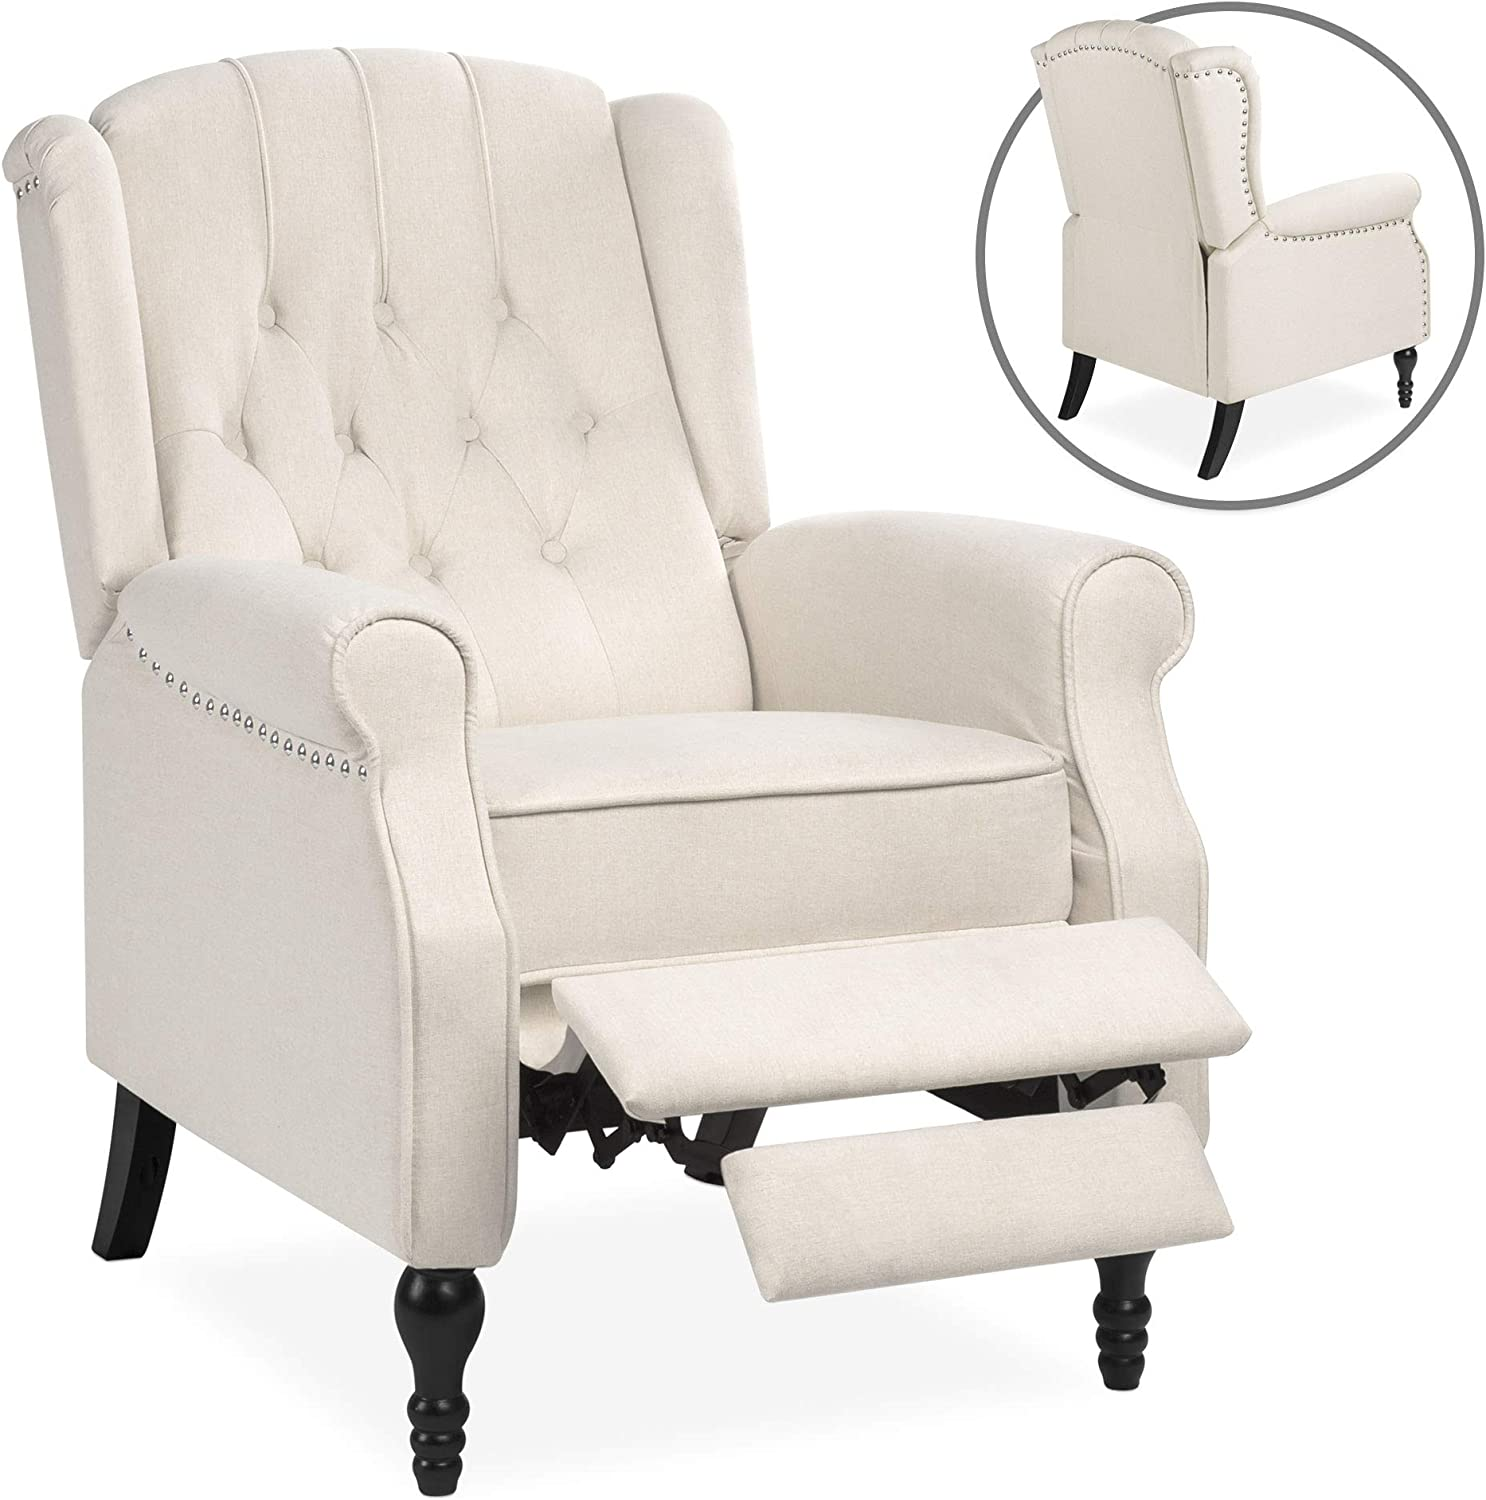 Nailhead Trim Beige Best Choice Products Tufted Upholstered Wingback Push Back Recliner Armchair w//Padded Seat